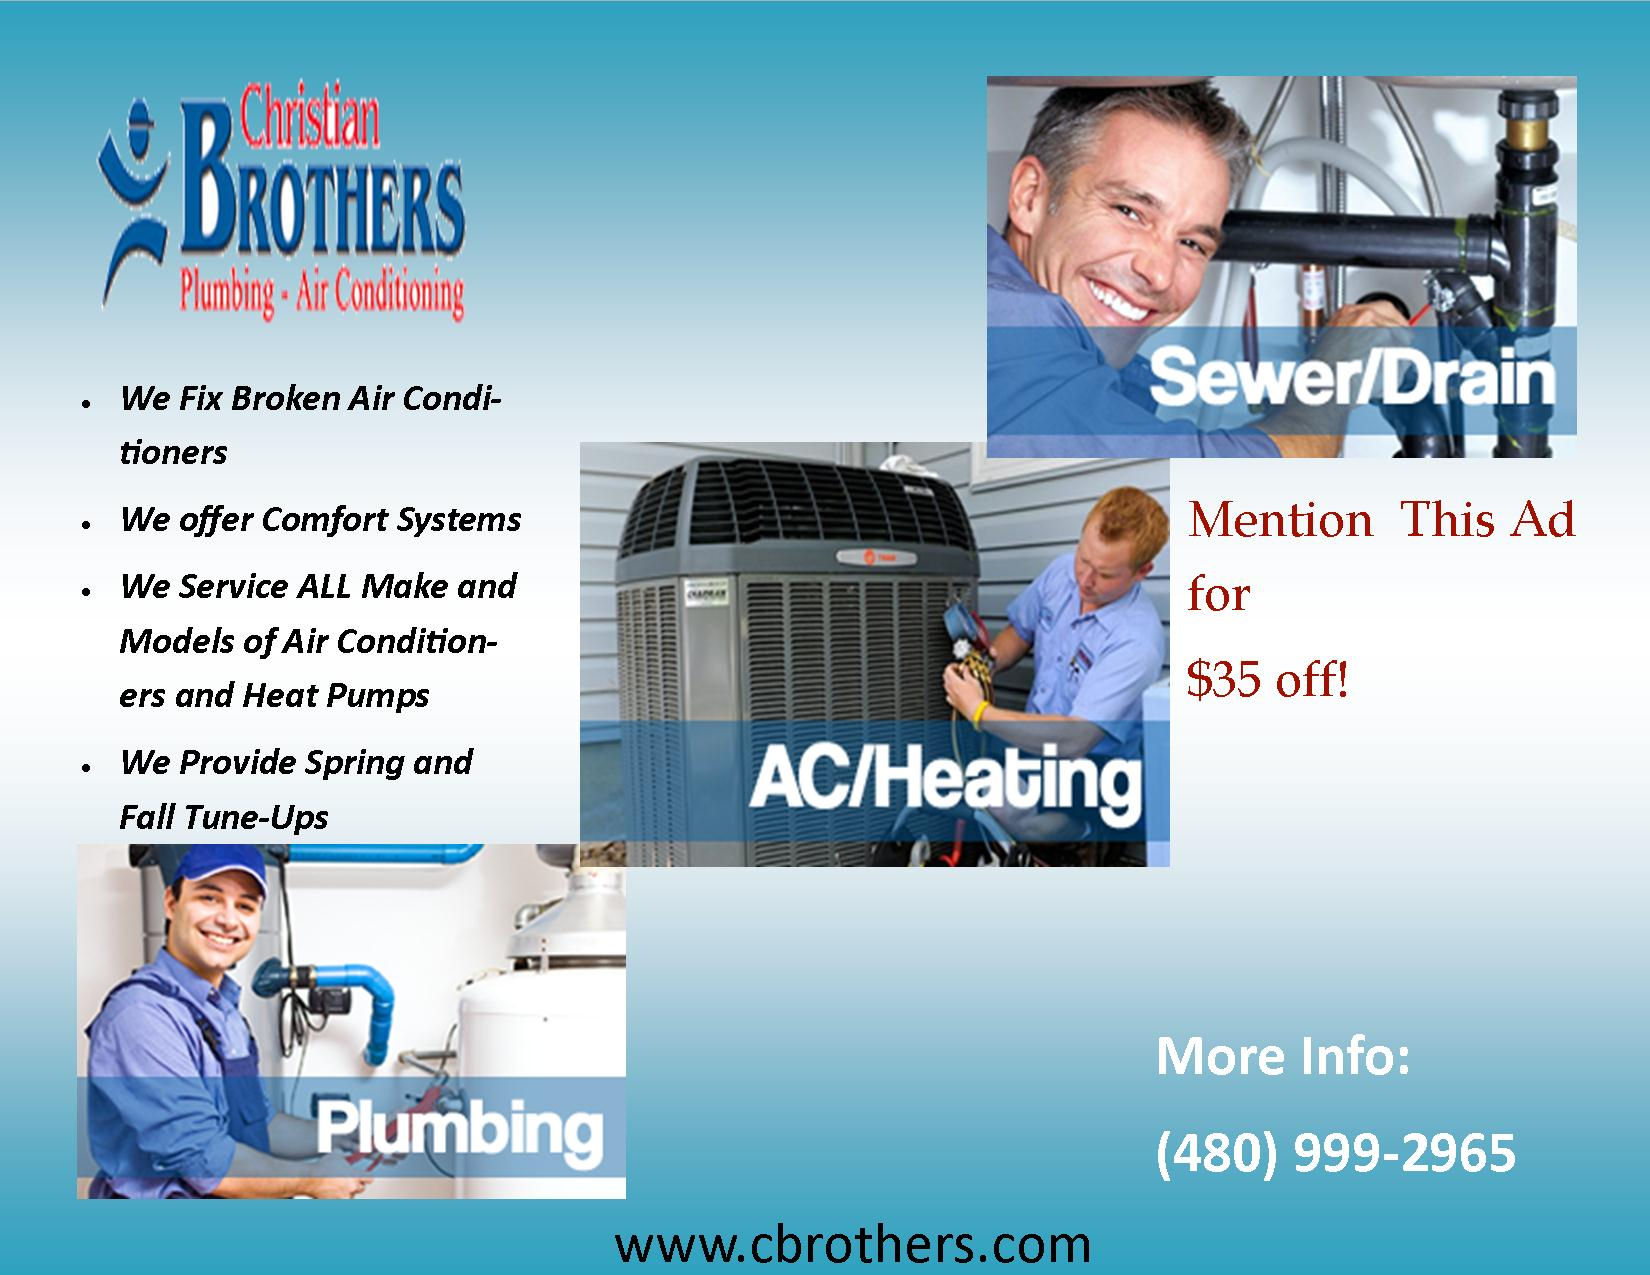 Christian Brothers Plumbing Amp Air Conditioning